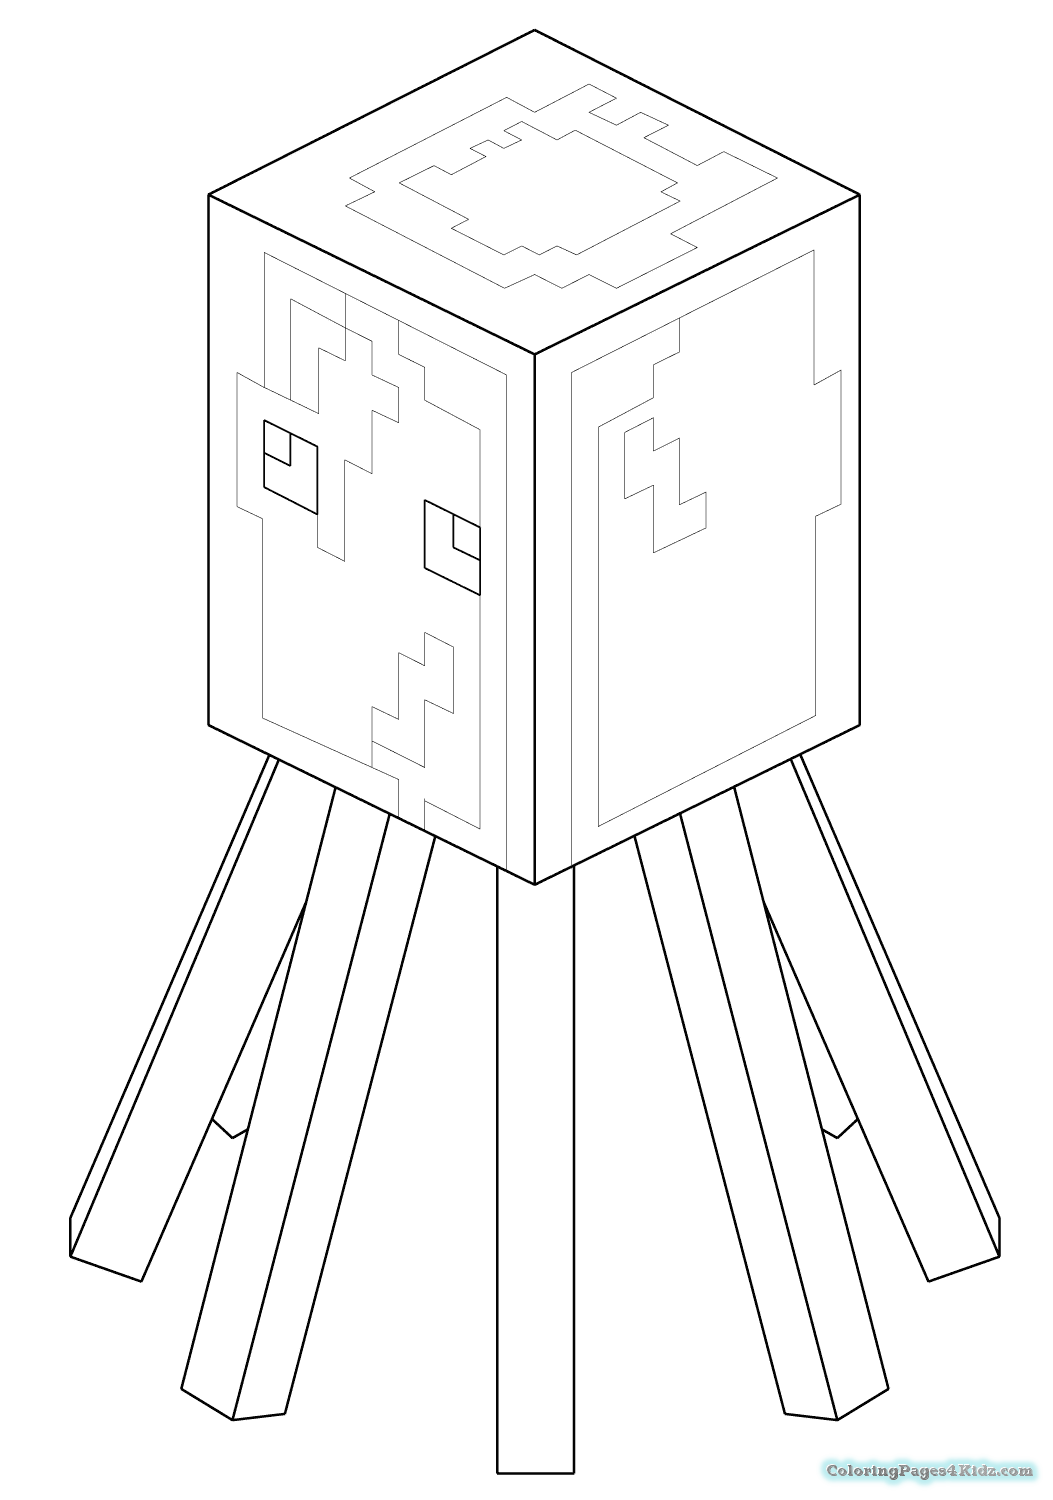 minecraft spider coloring pages minecraft spider drawing at getdrawings free download coloring minecraft pages spider